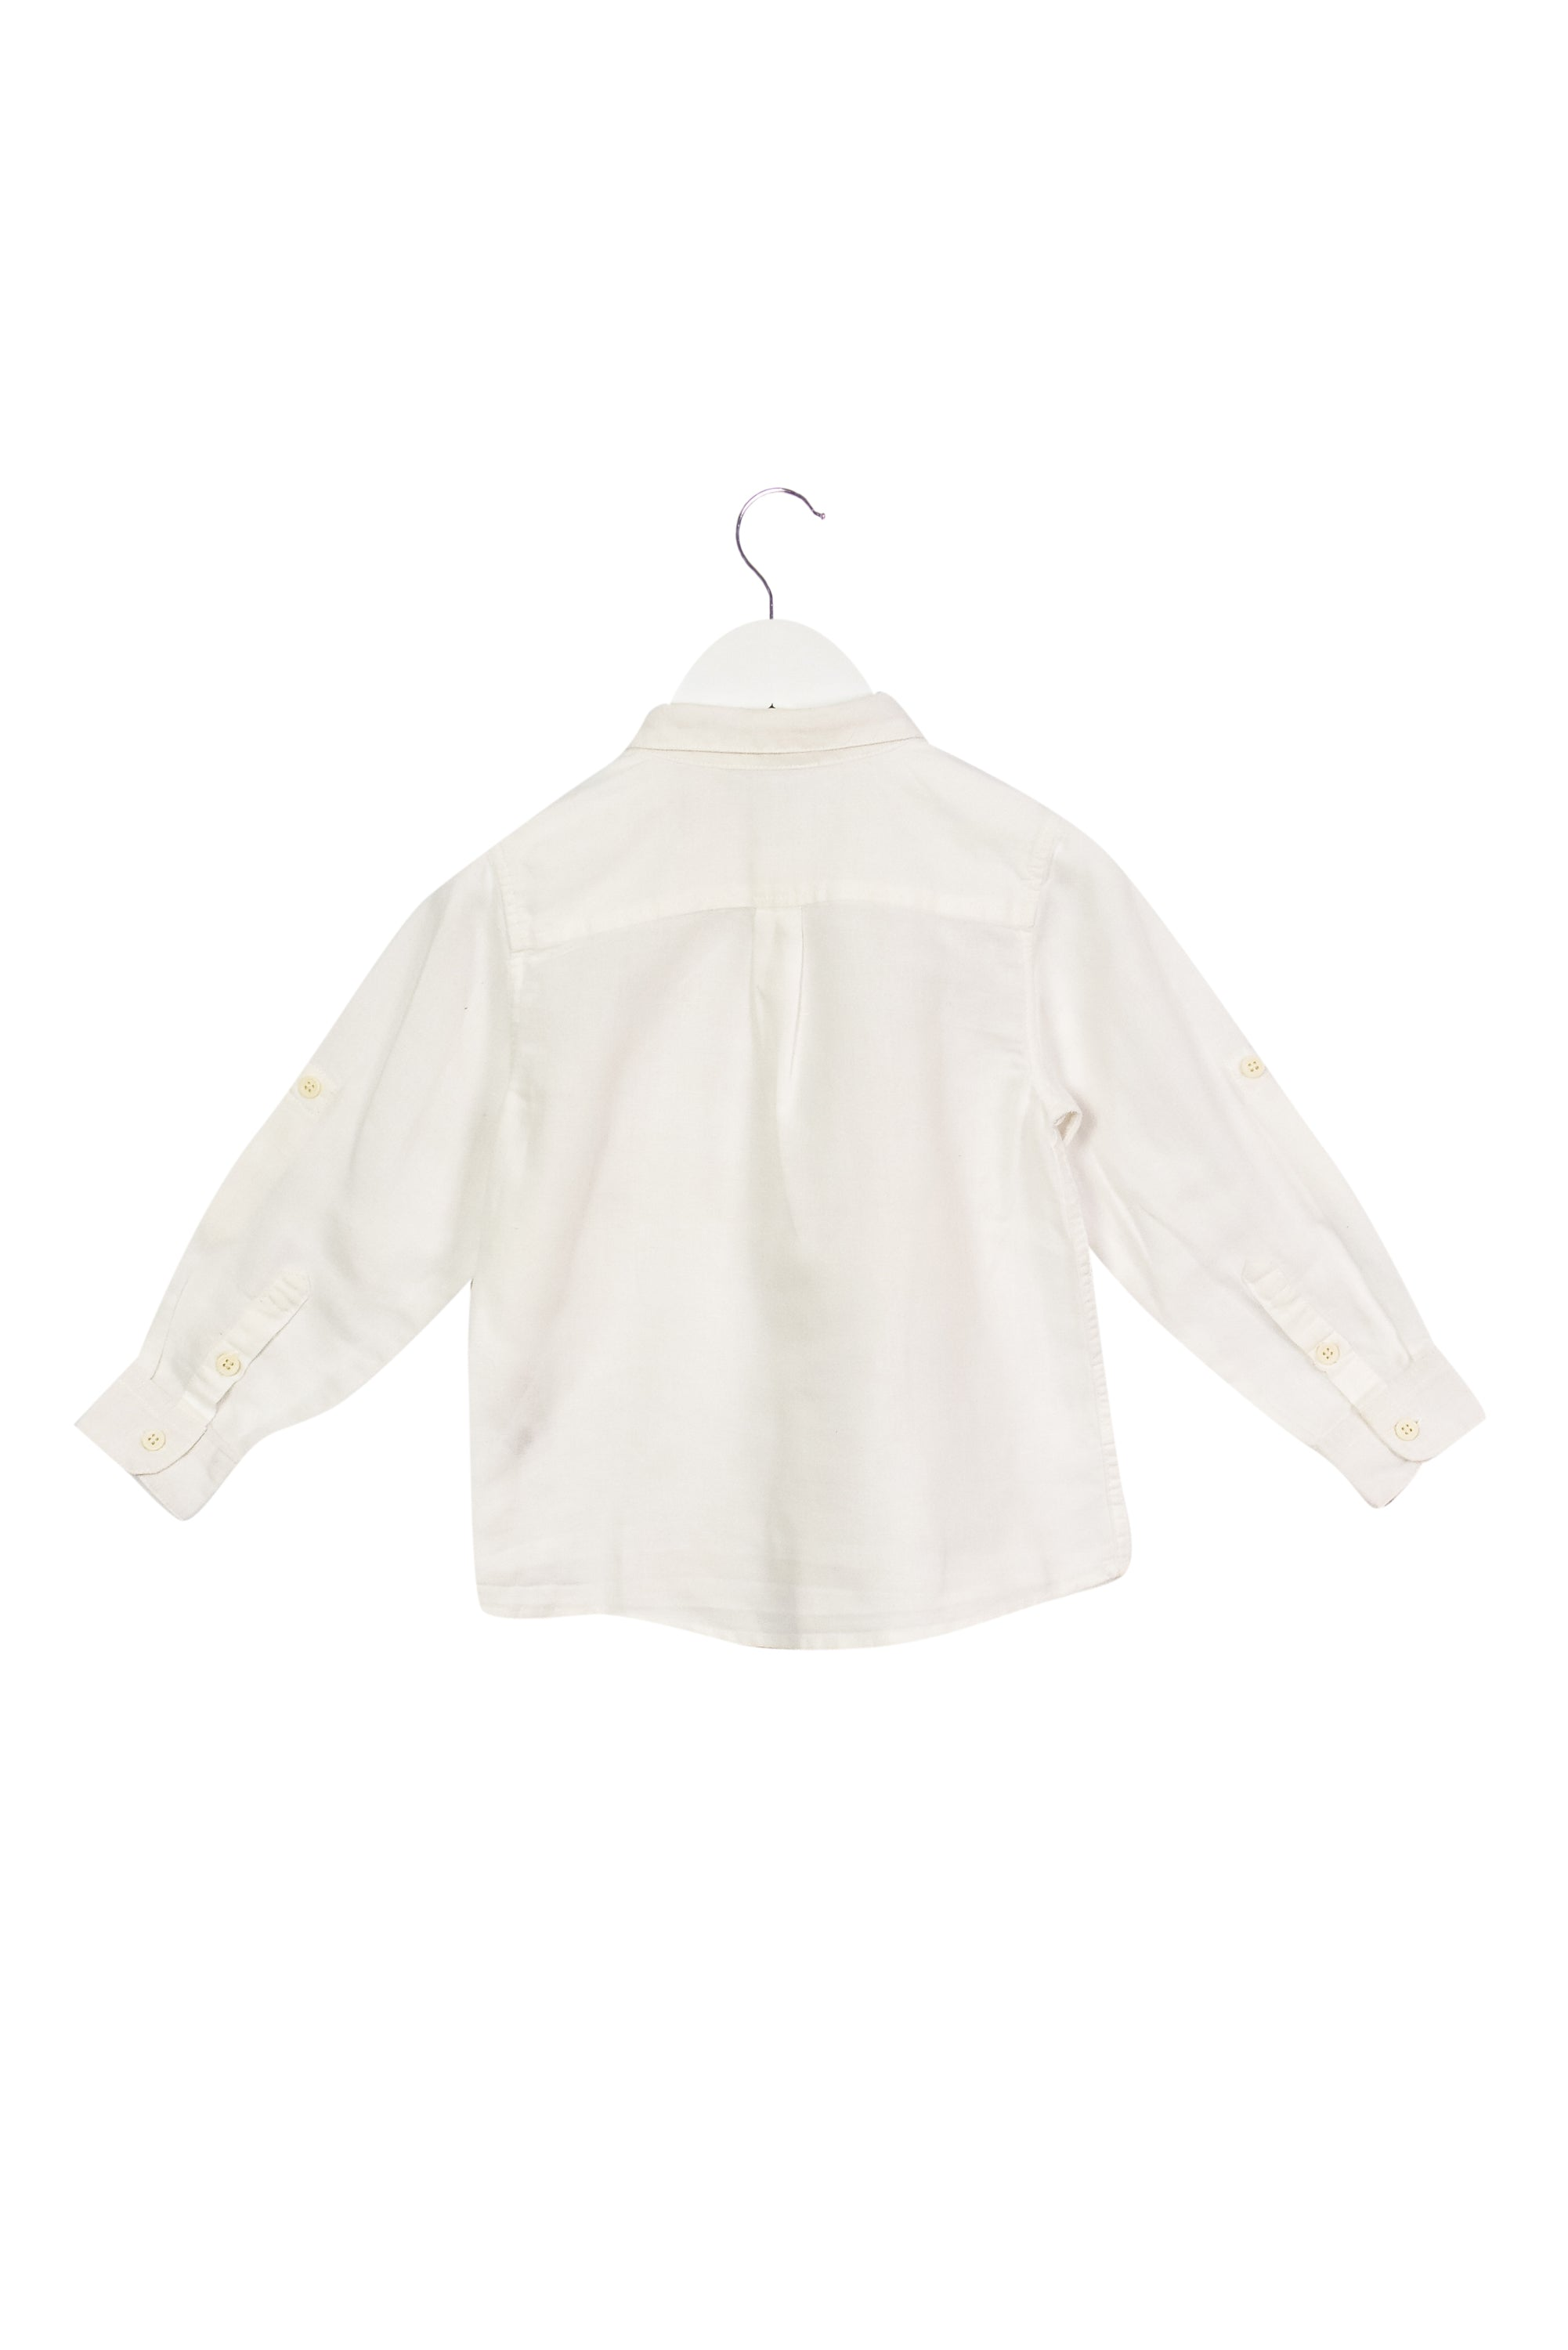 10035442 Petit Bateau Kids~Shirt 4T at Retykle